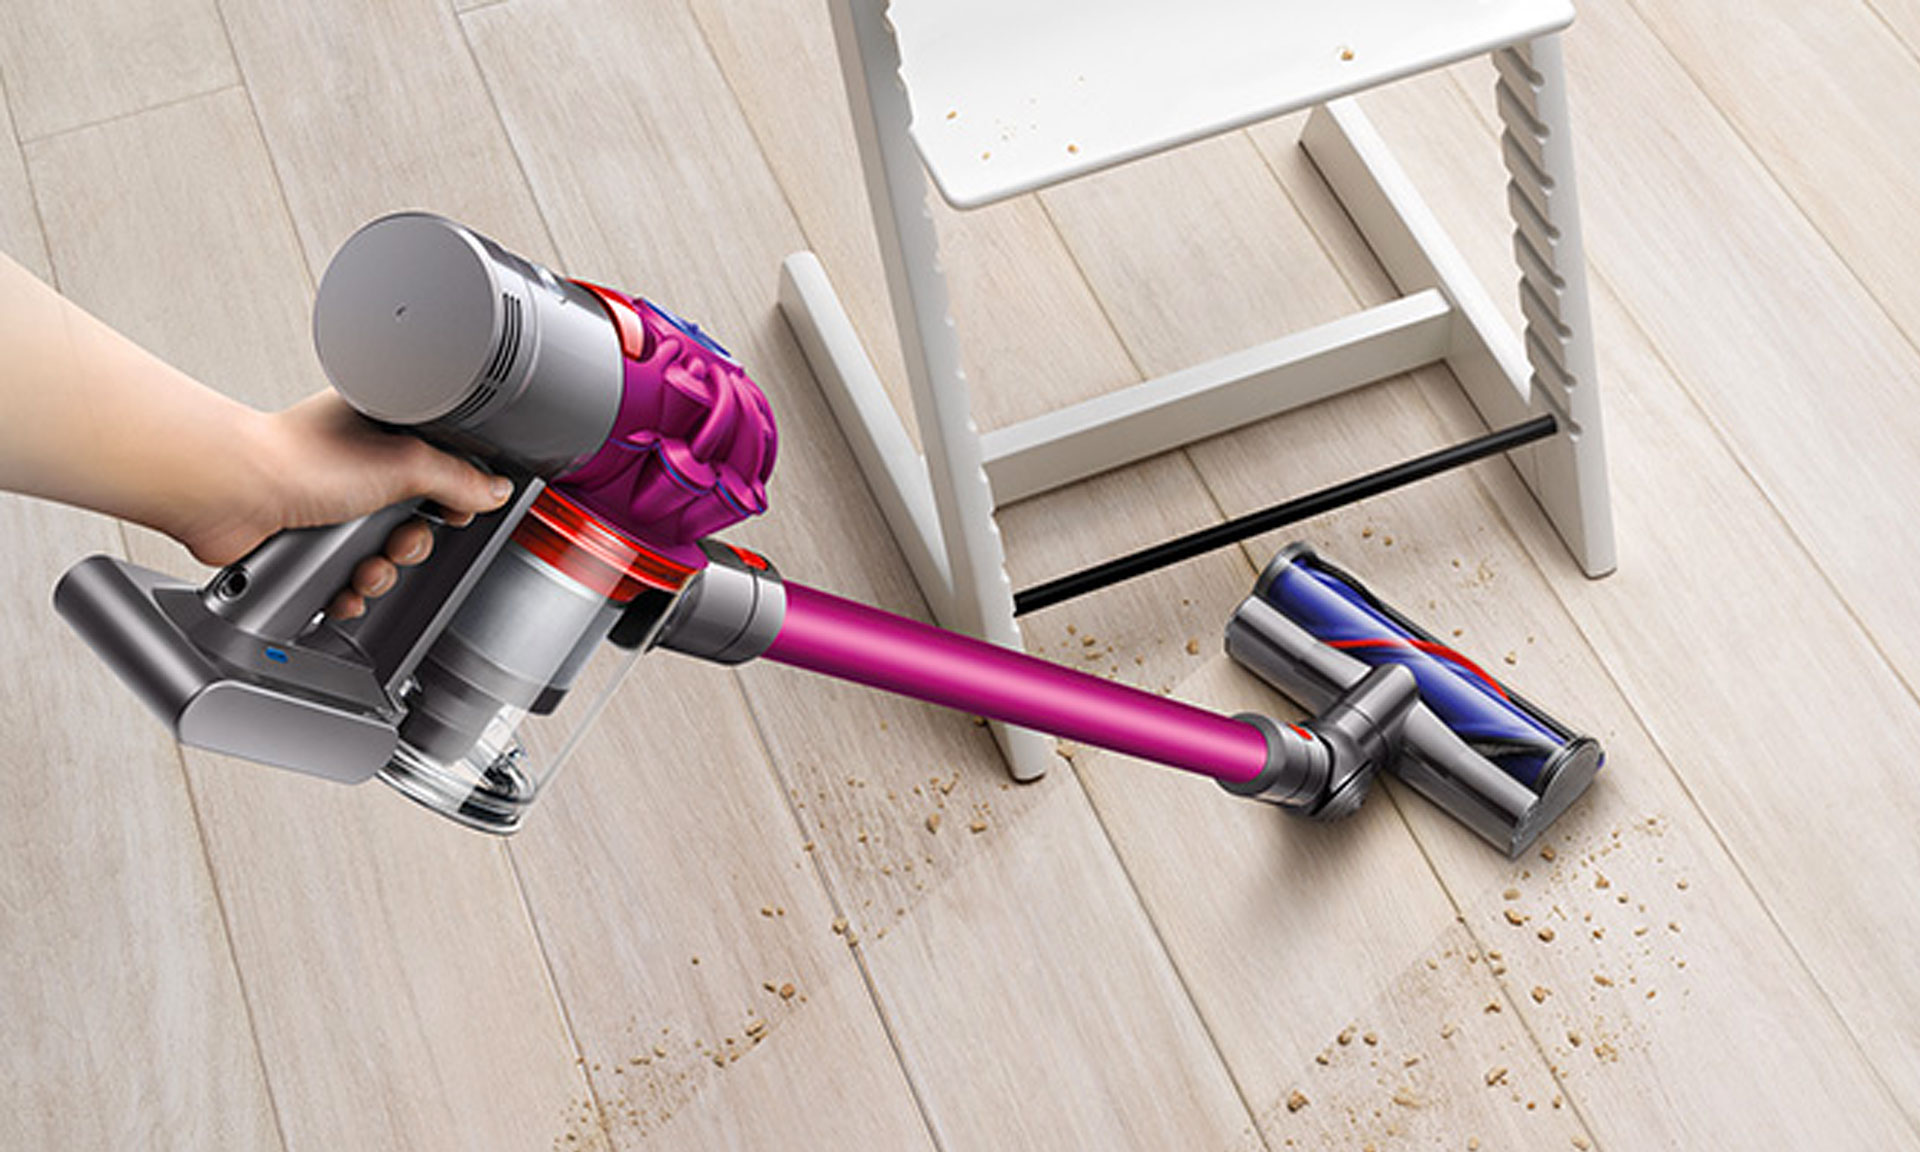 Get The Best Deal On A Dyson Cordless Vacuum